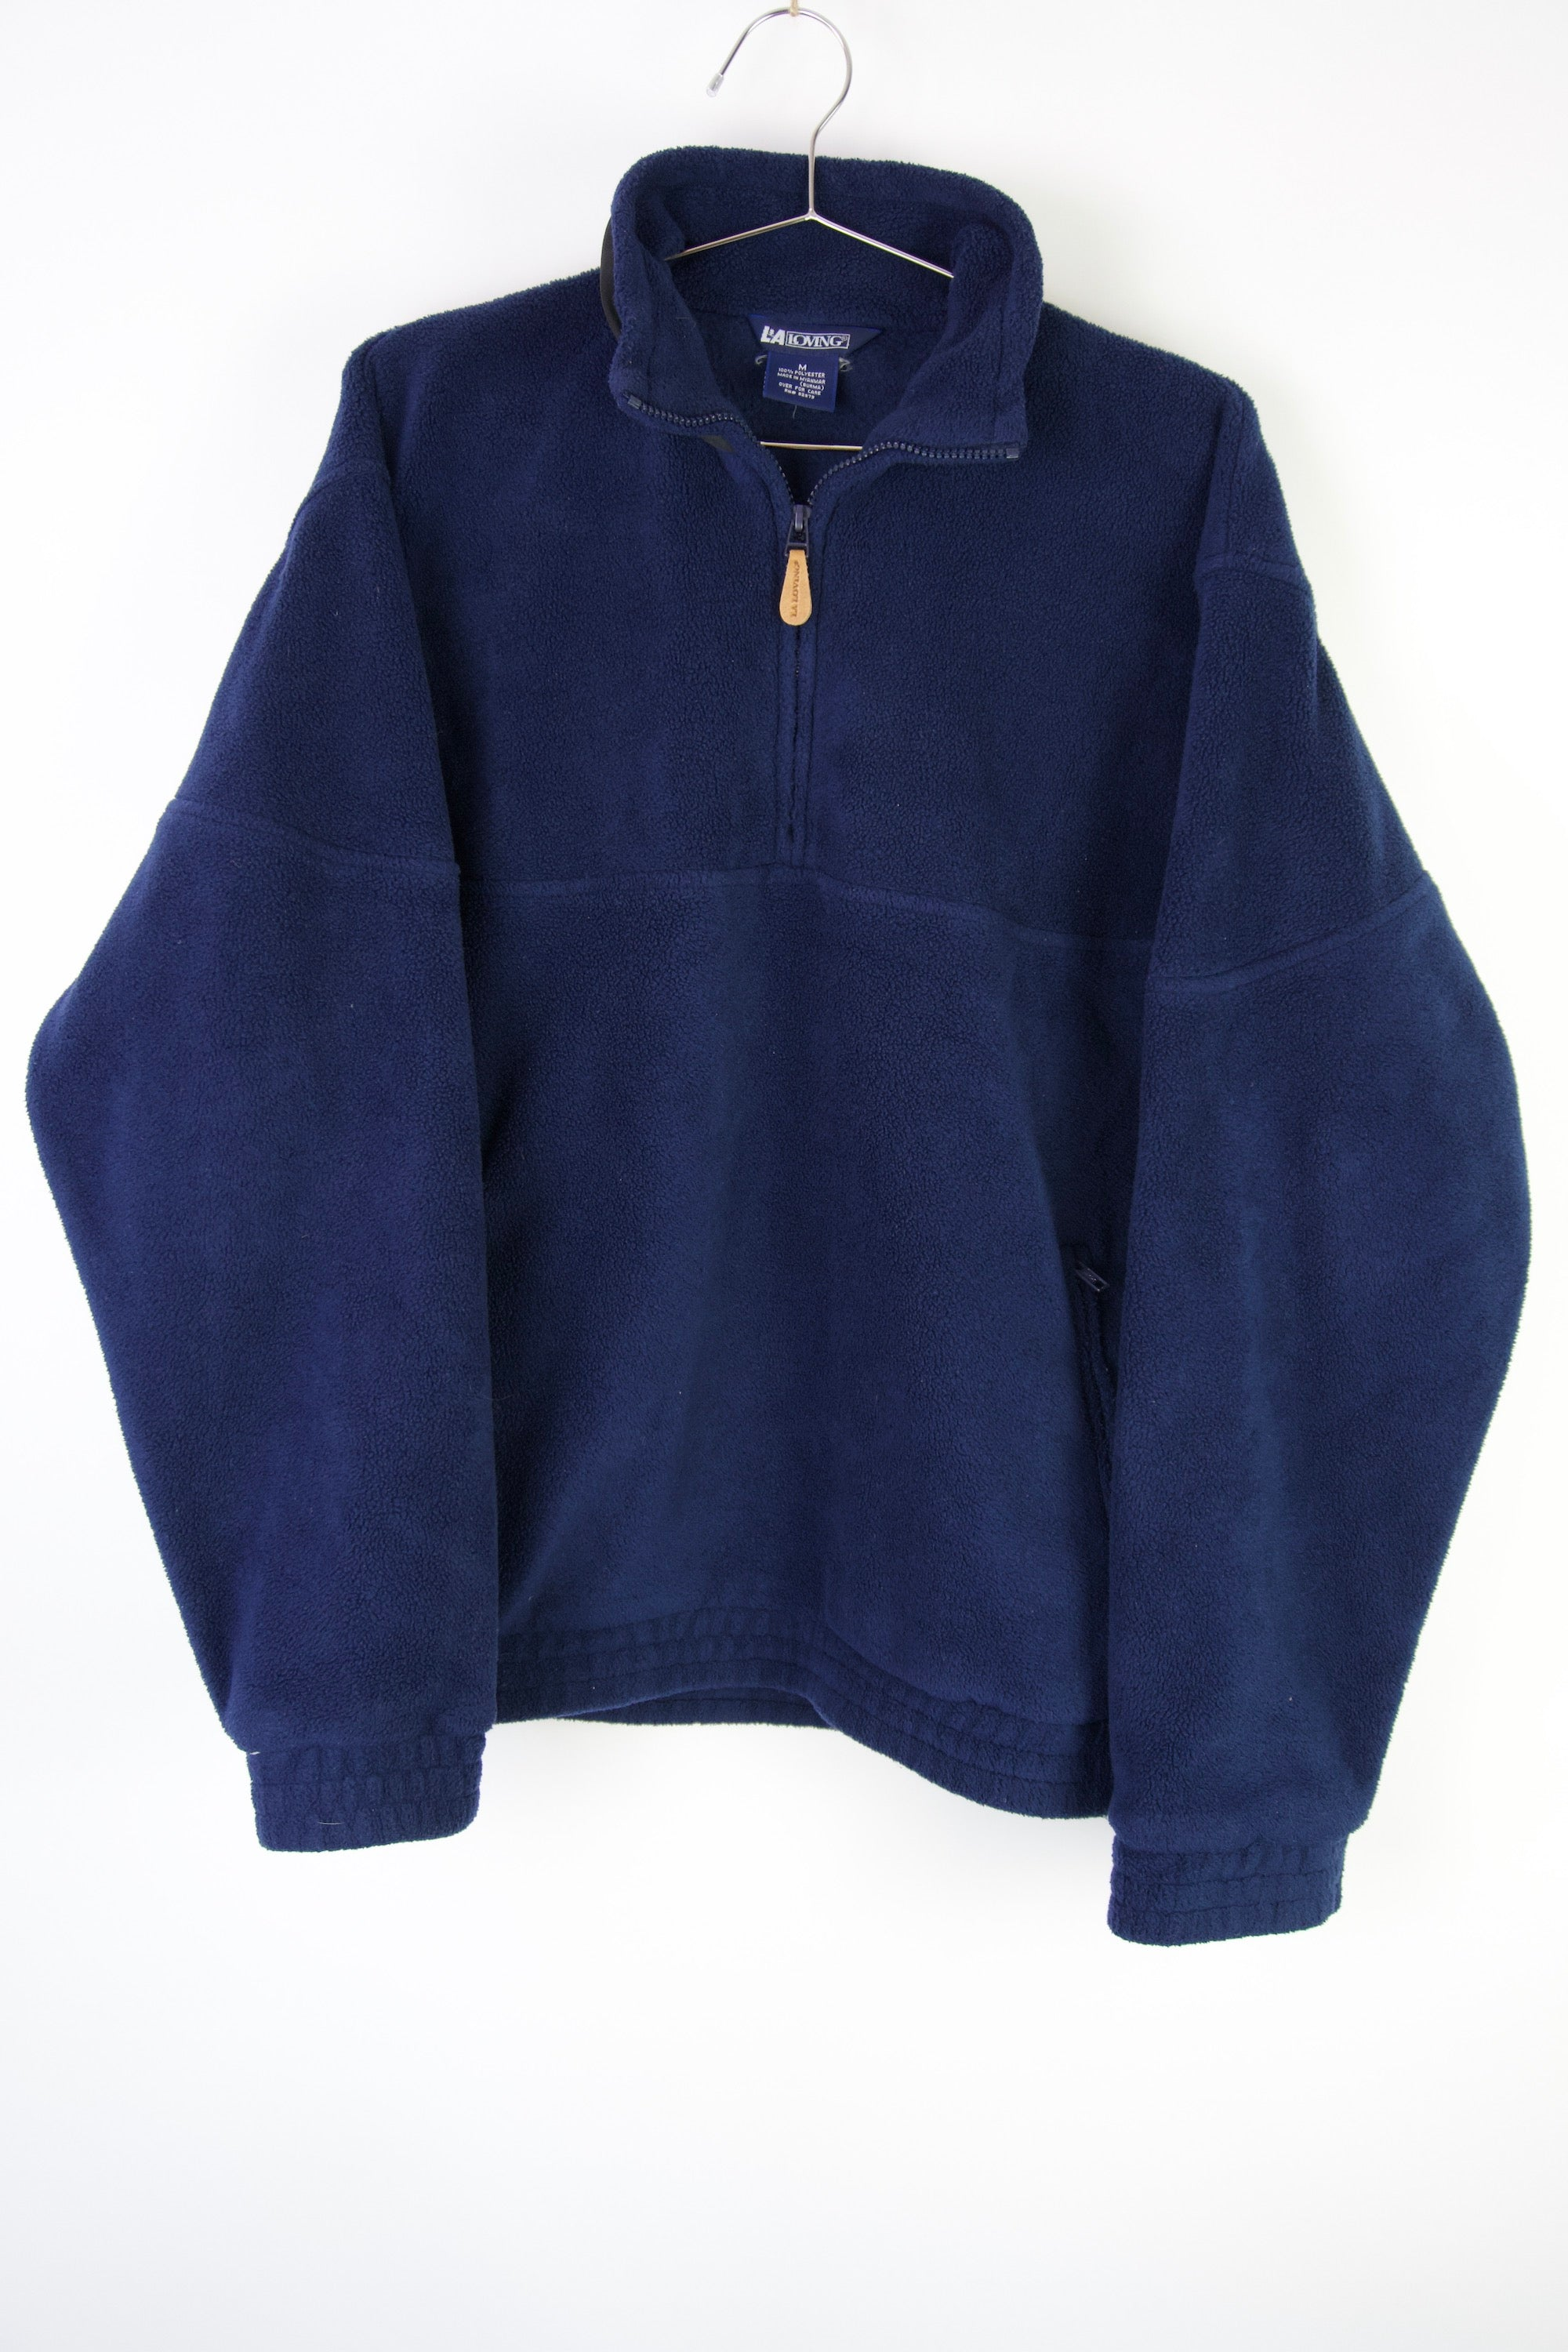 Navy Blue Quarter-Zip Fleece Sweatshirt